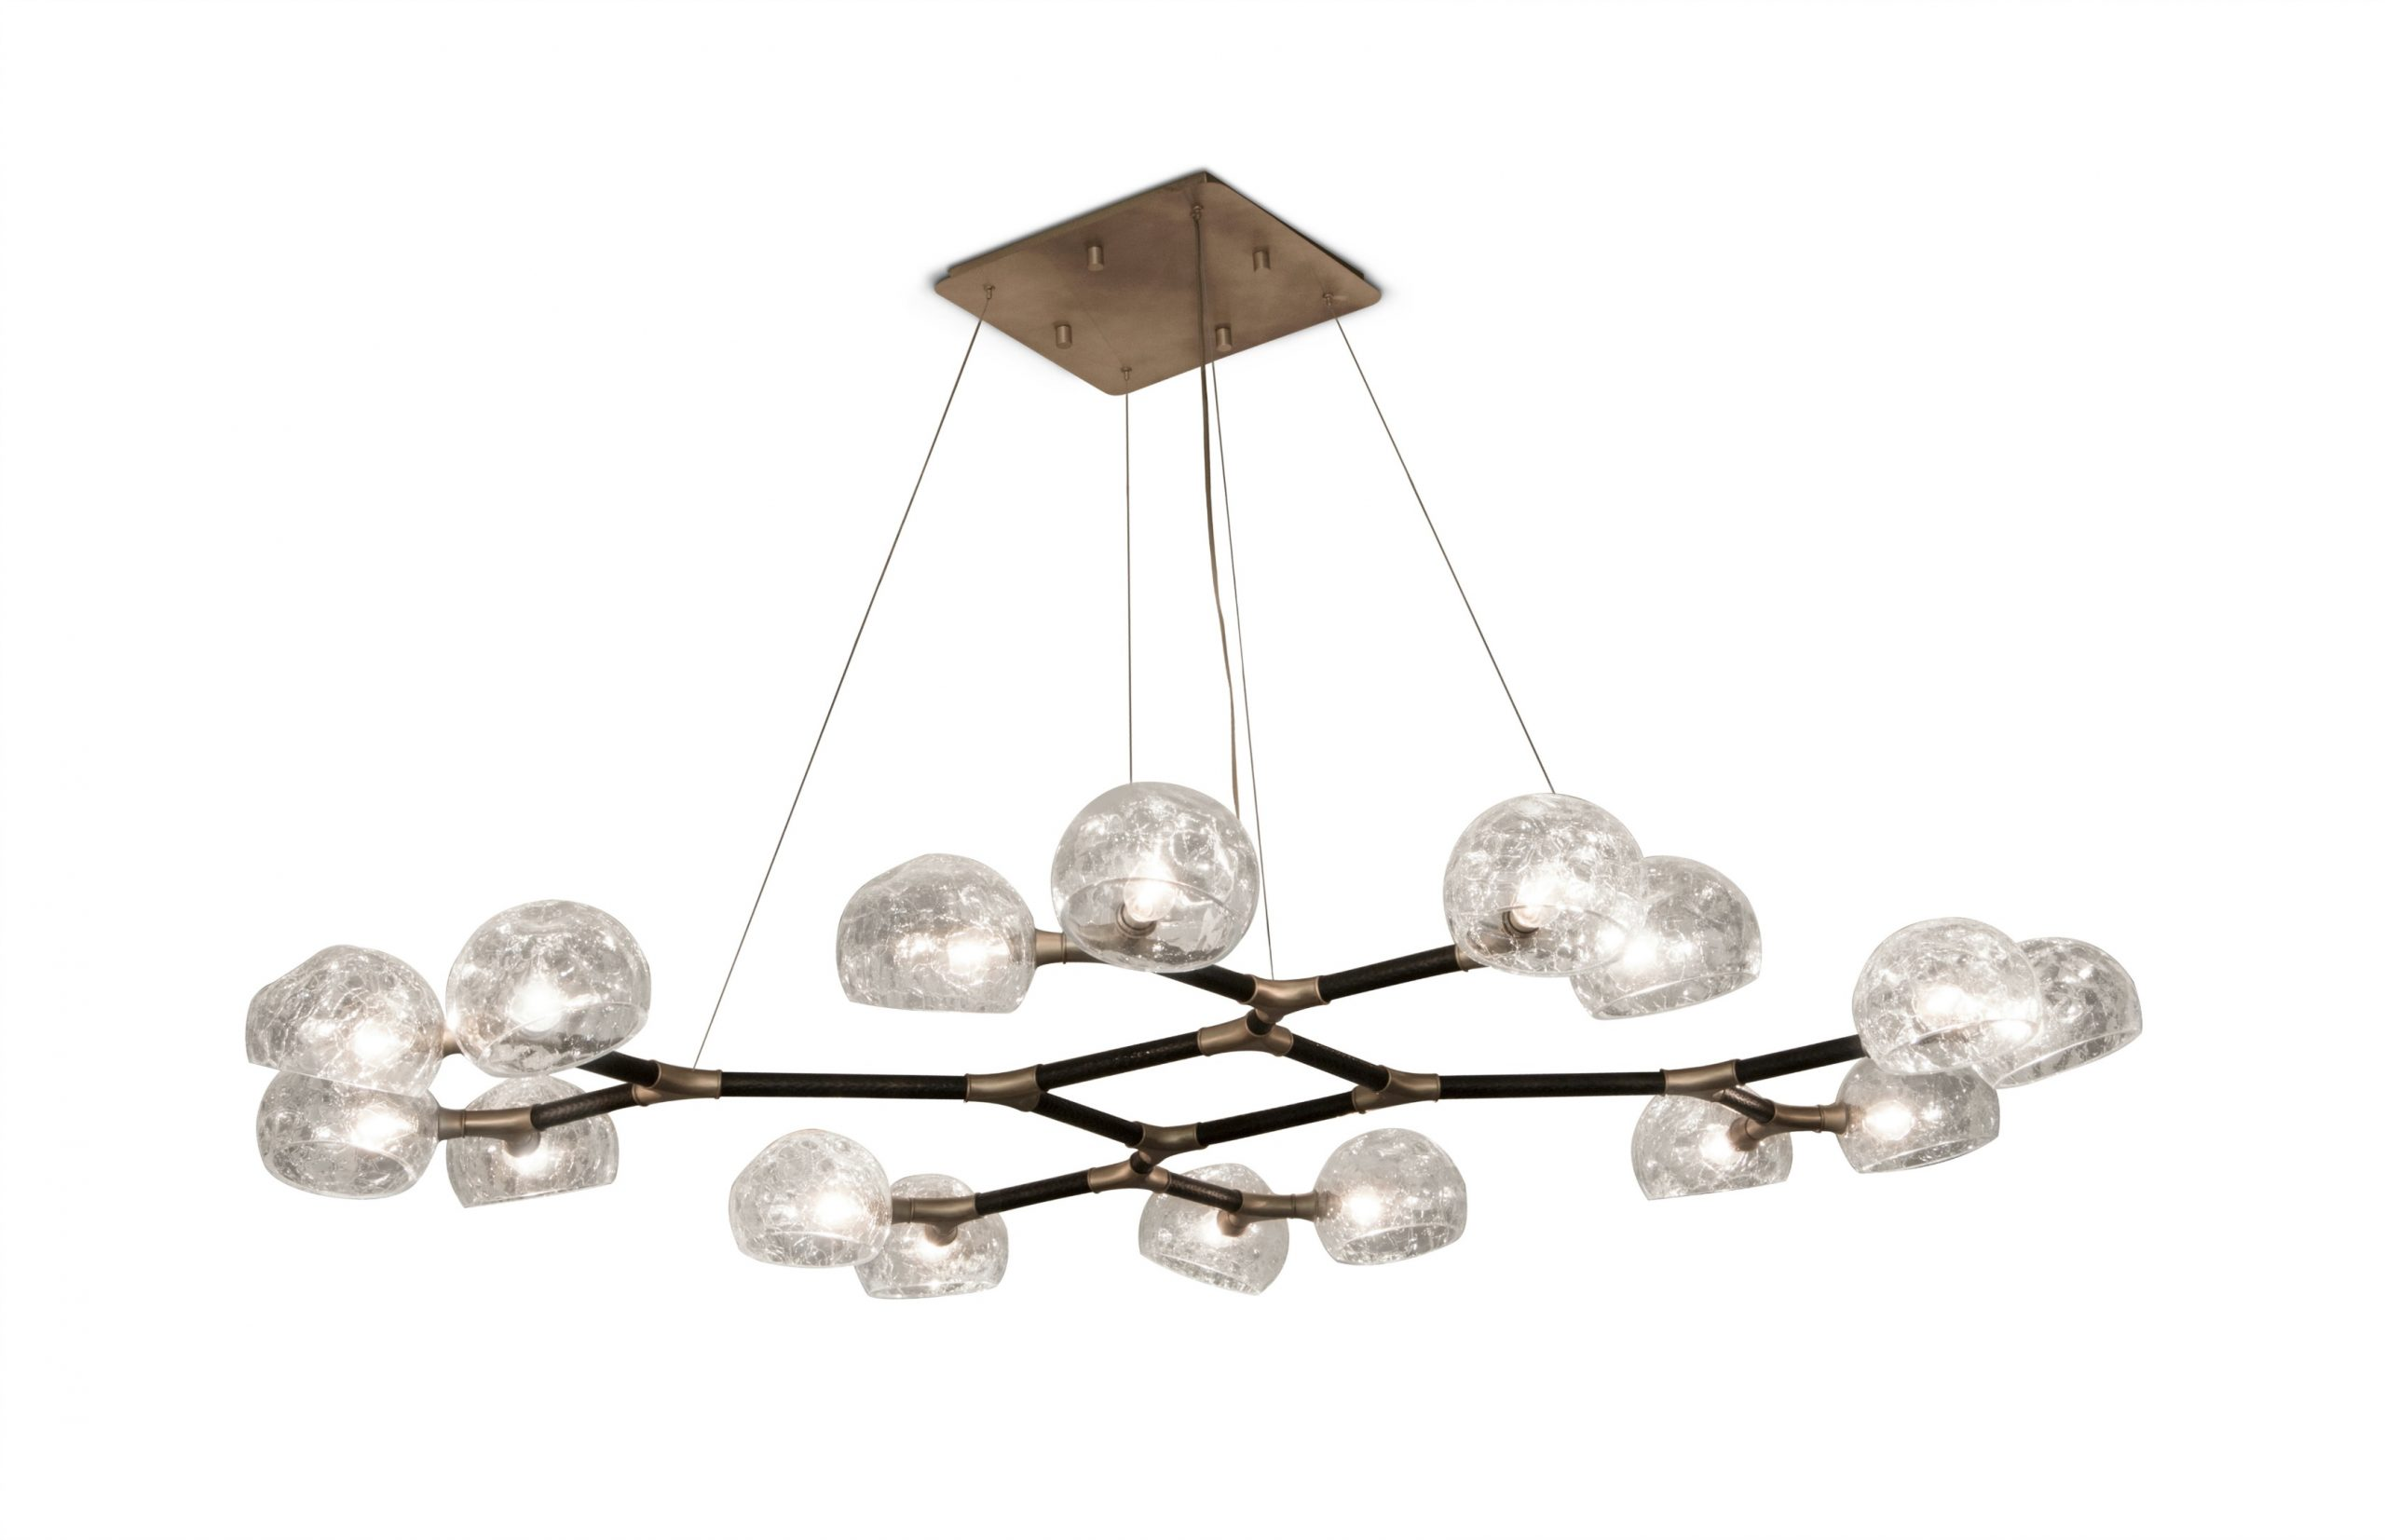 drake/anderson Drake/Anderson: Interior Design Meets Modernism and History horus suspension light  full size scaled